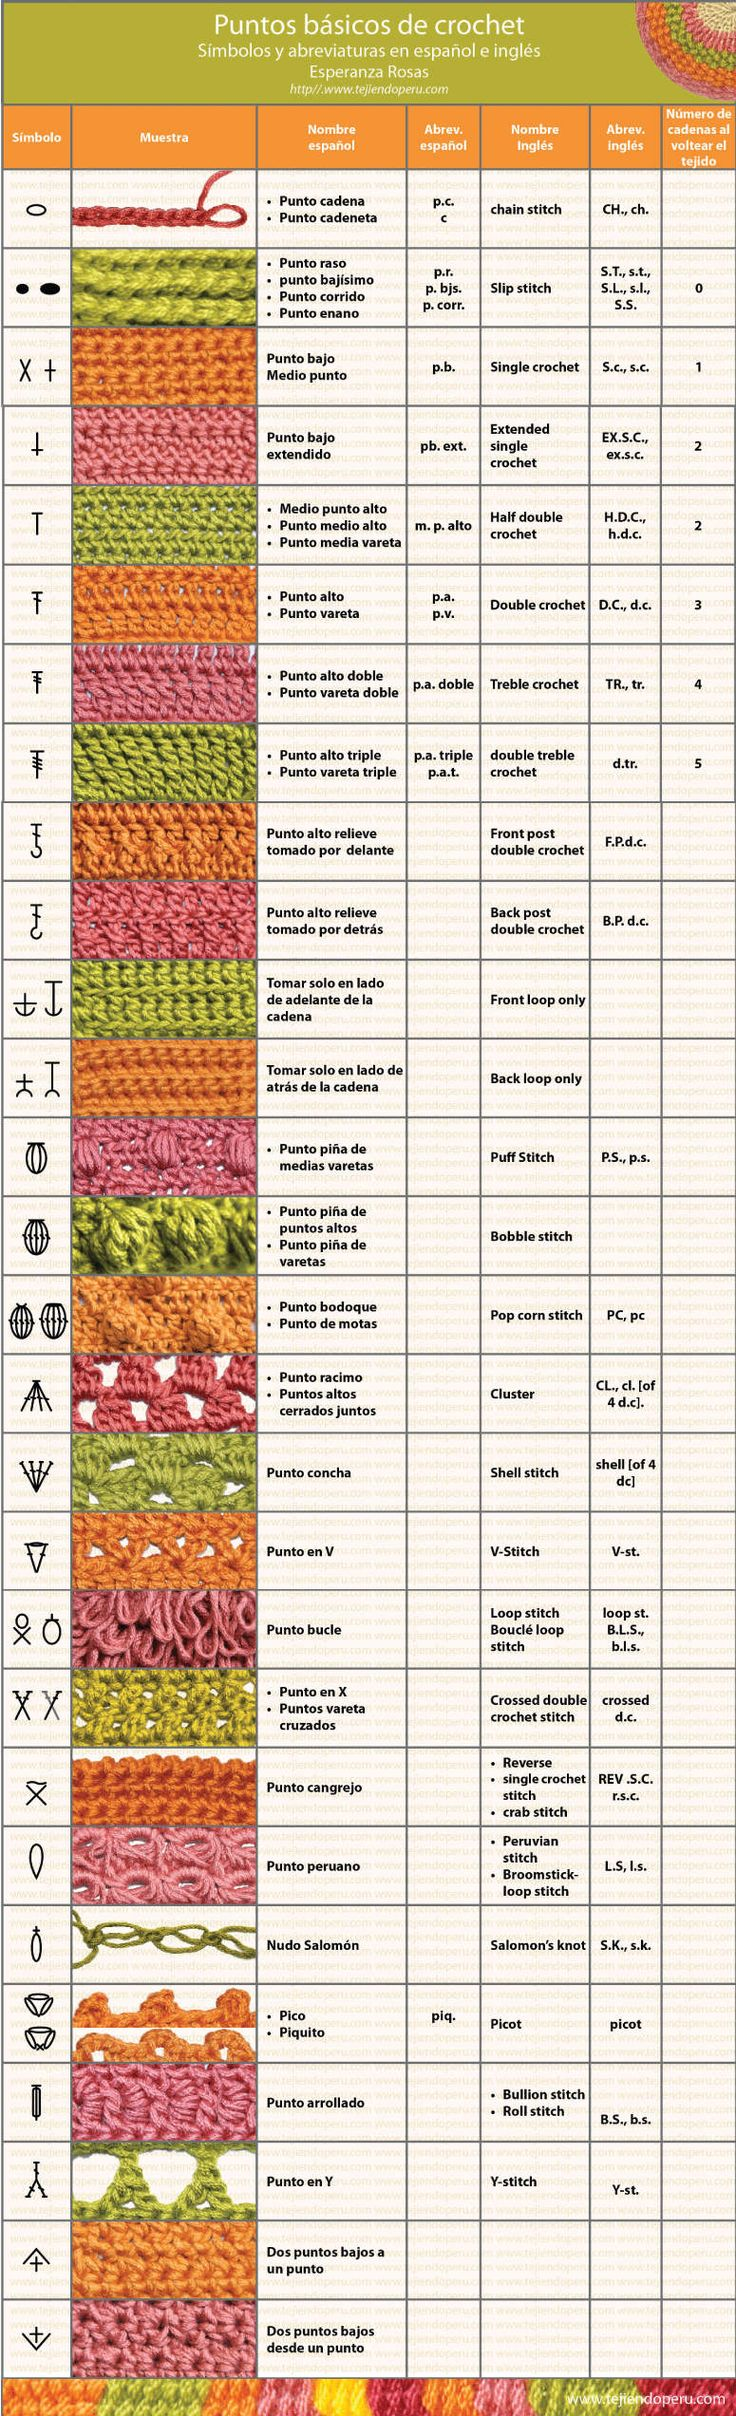 Let's check our knowledge of crochet theory. Which crochet stitches can you recognize from the pictures and signs? :)